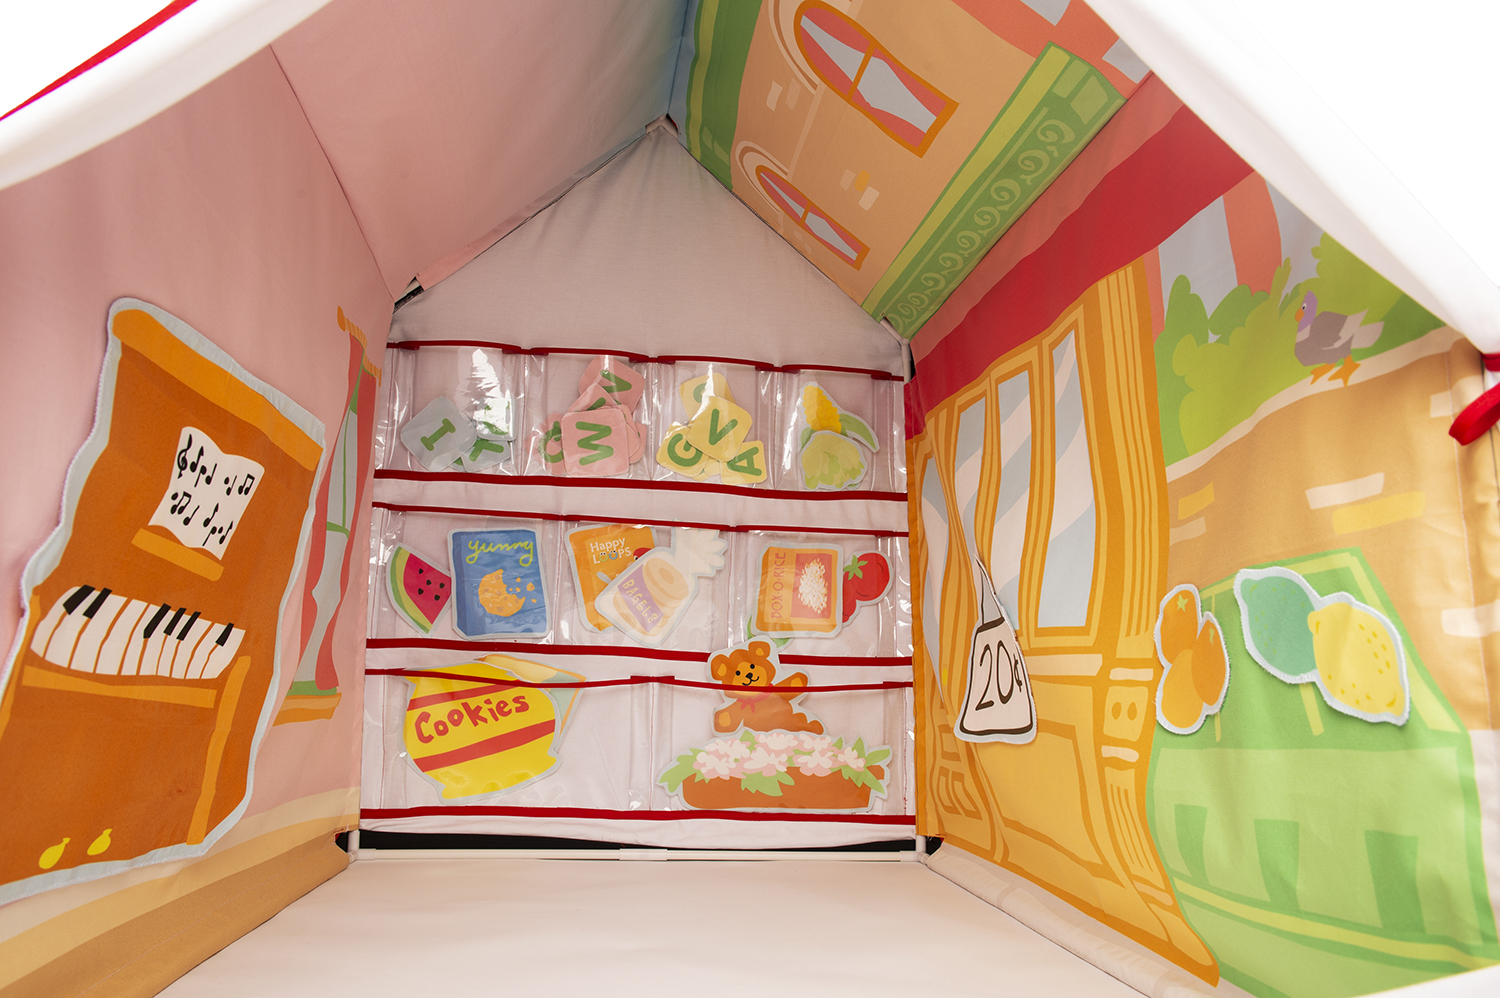 An imagination tent design